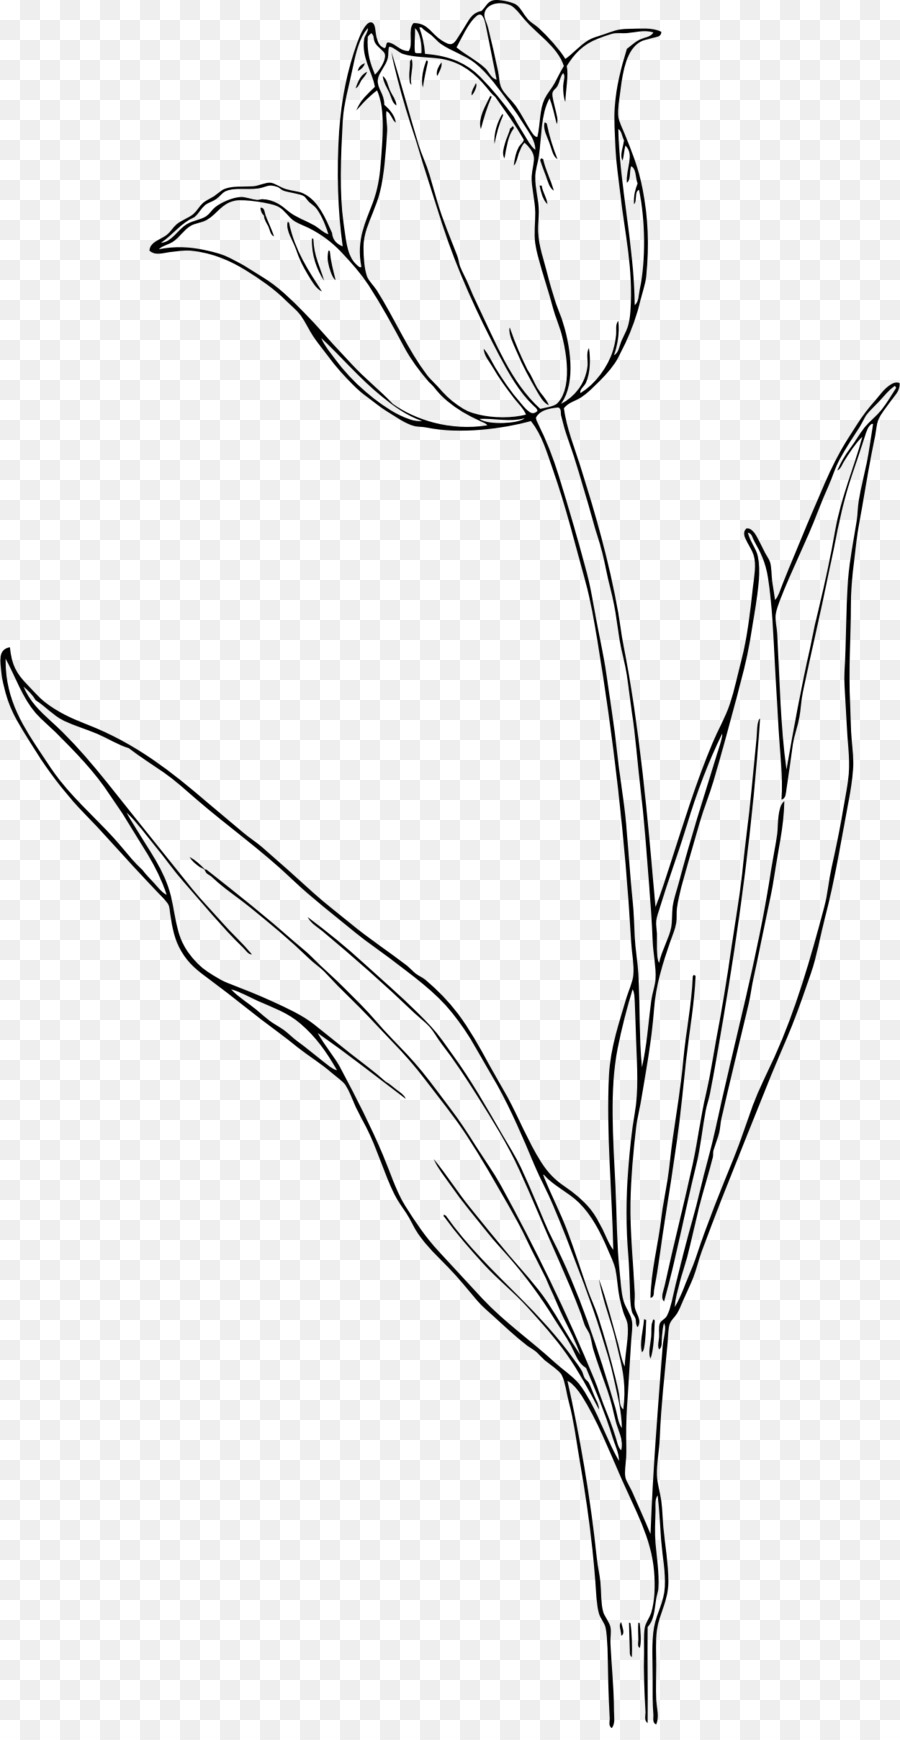 Black And White Flower clipart - Tulip, Flower, Leaf ... picture royalty free download